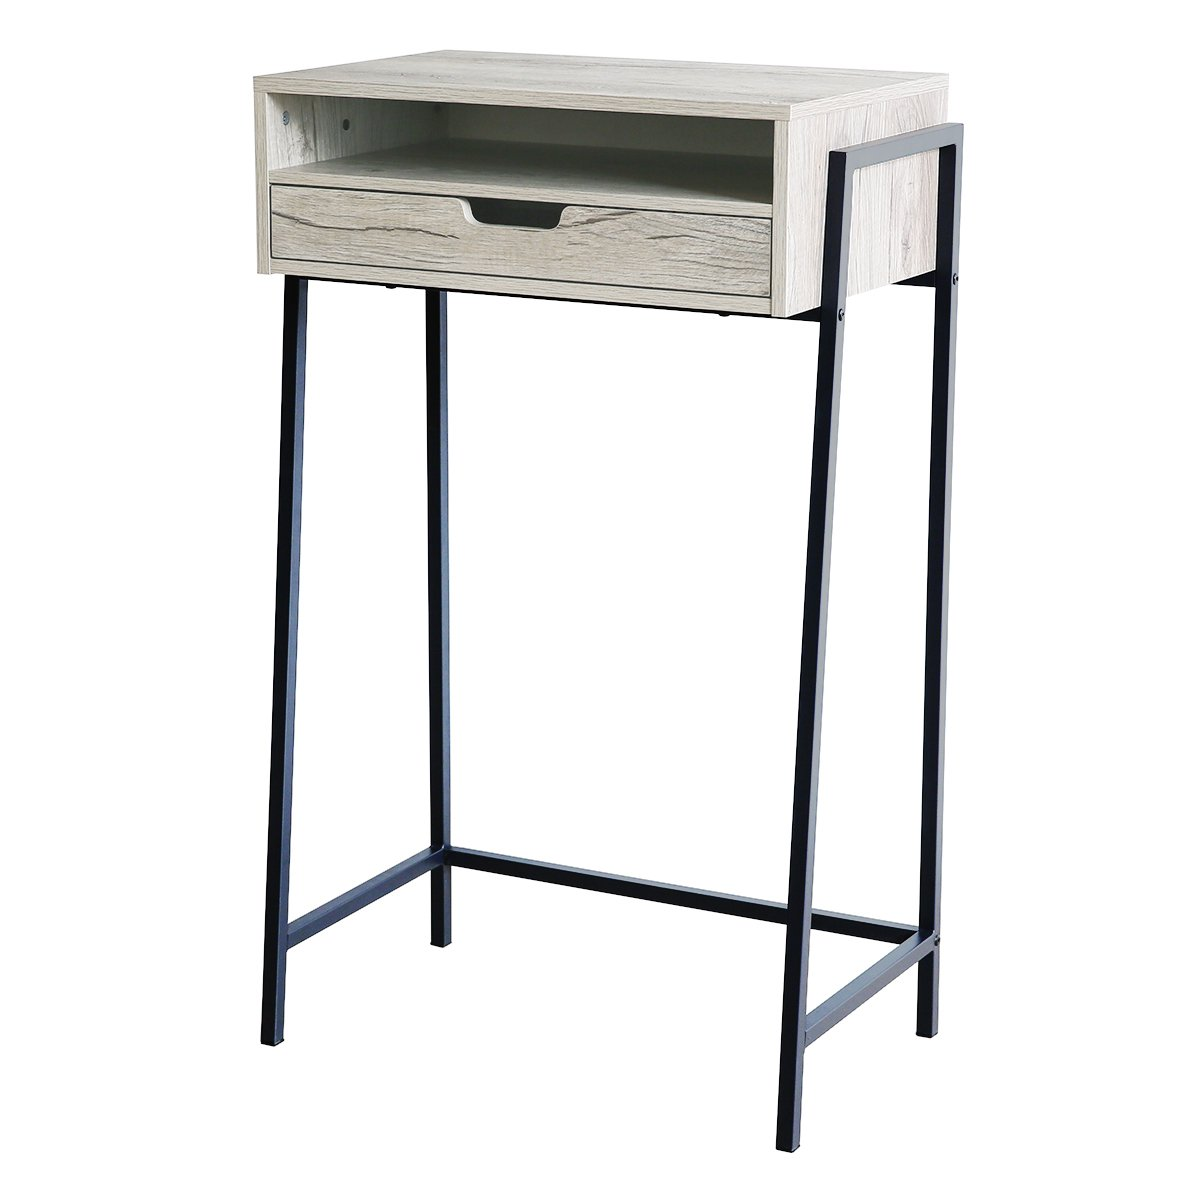 Furnigance Multi-use Standing Desk Stand Up Desk Workstation Mini Bar Snack Table with Storage Drawers for Home Office